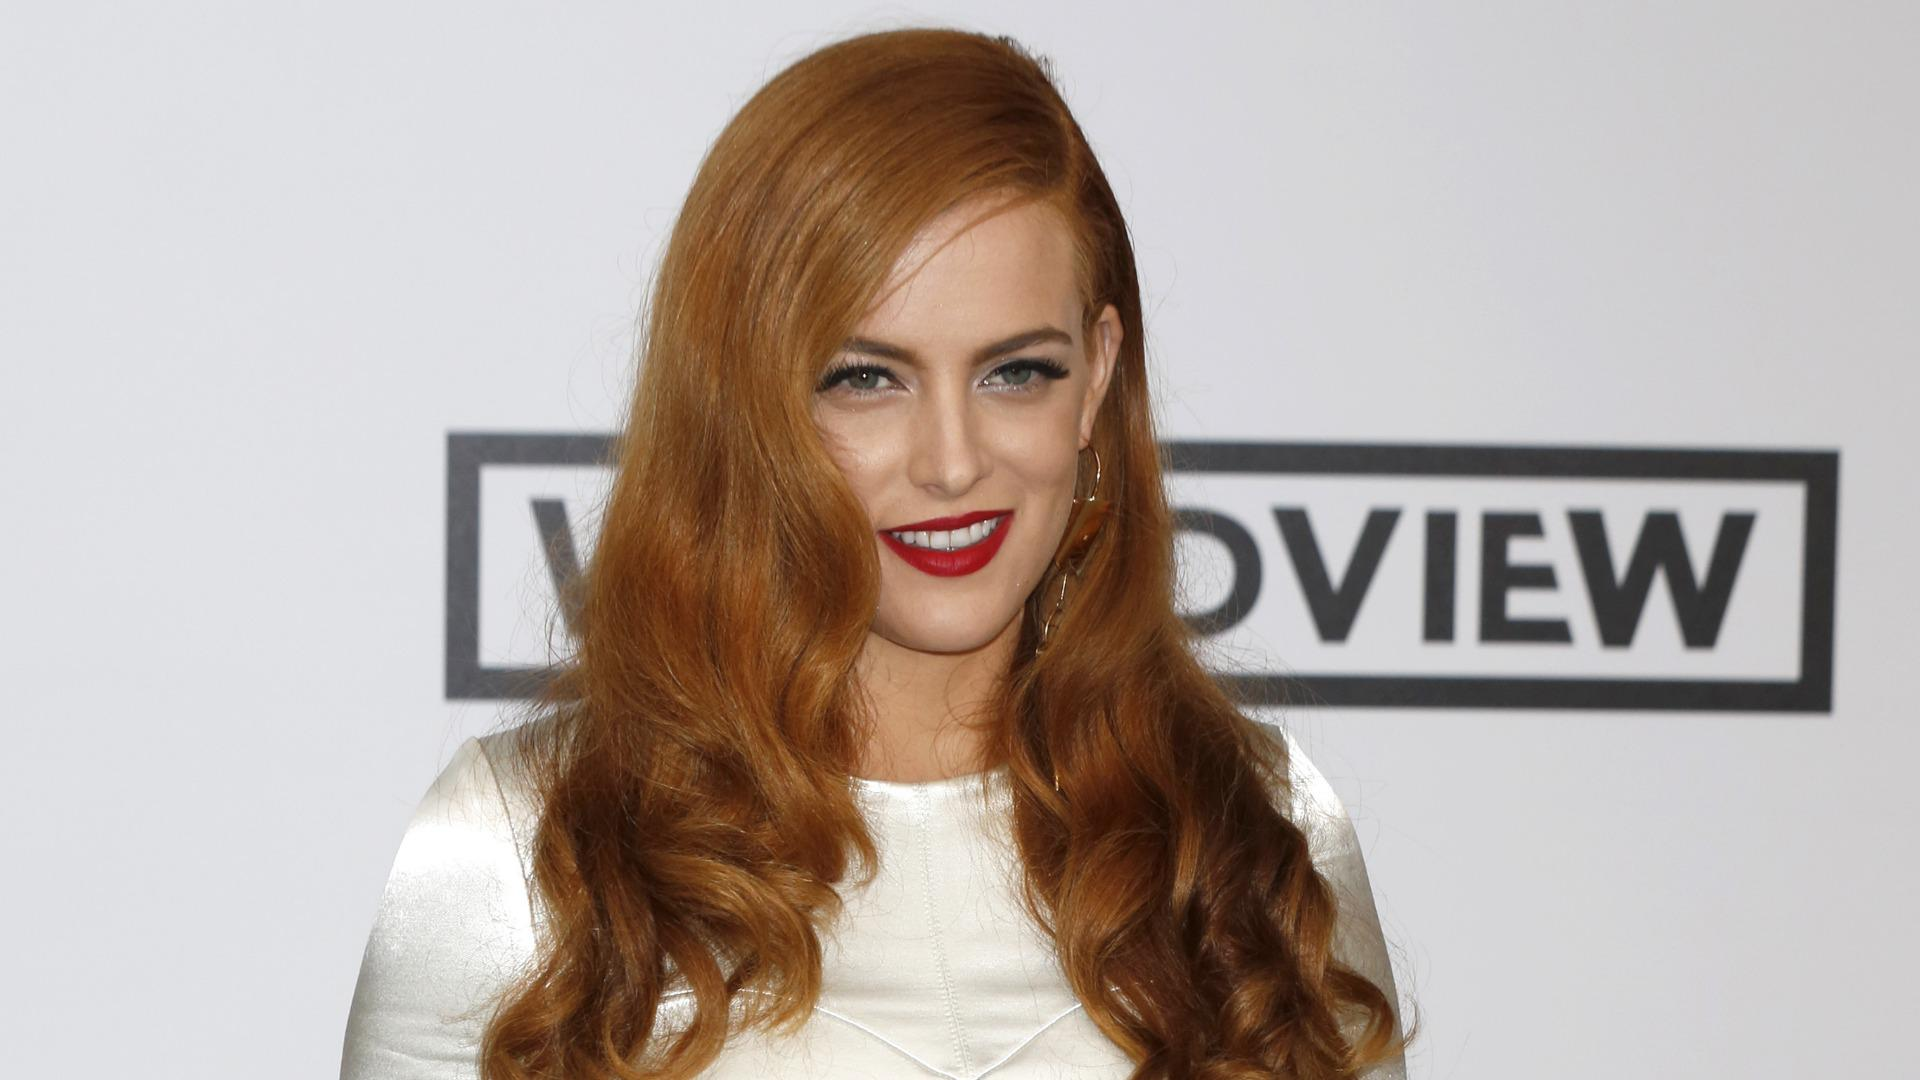 1920x1080 - Riley Keough Wallpapers 10